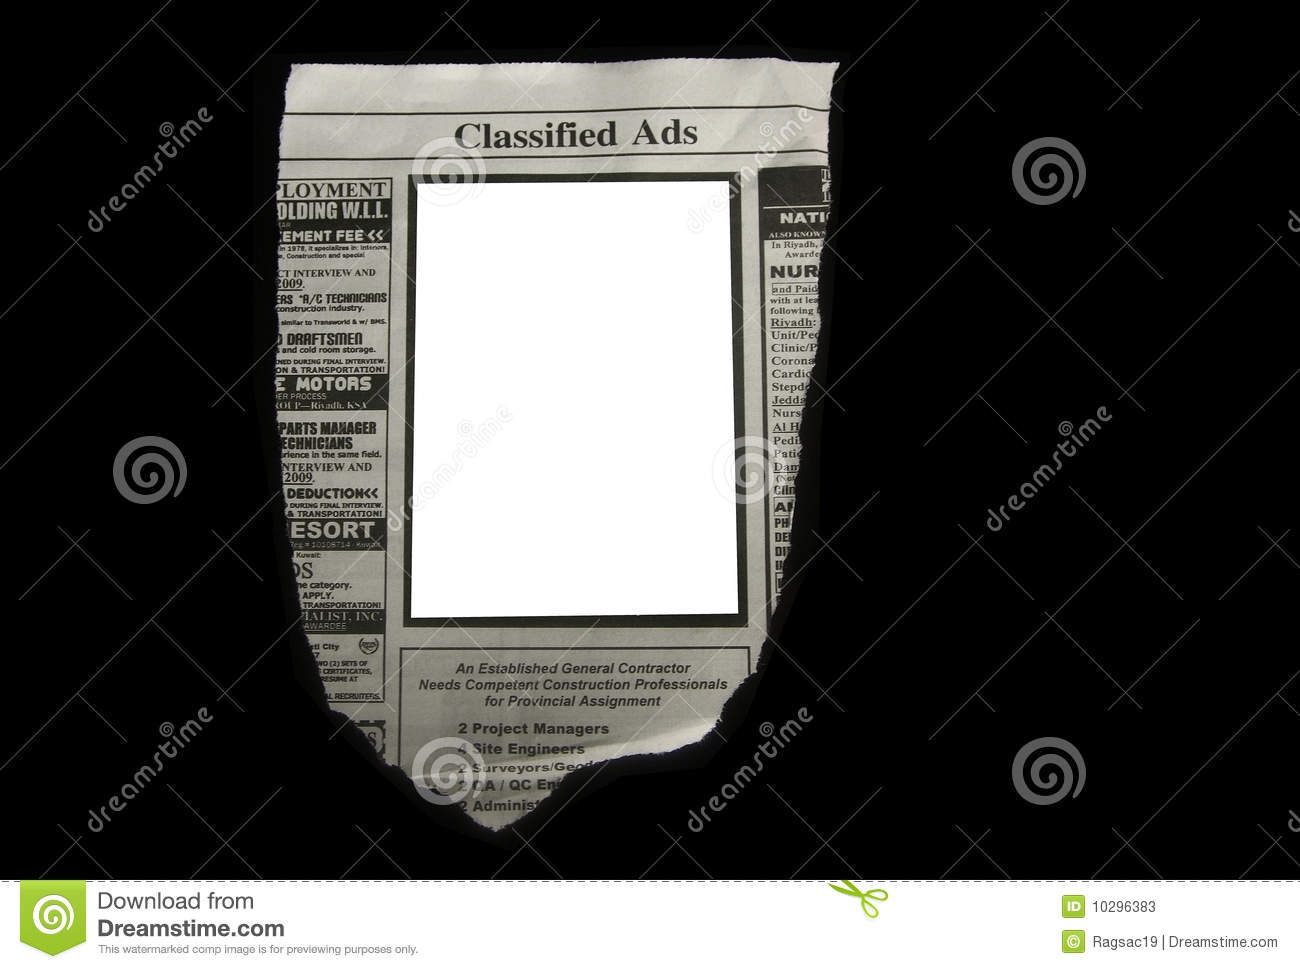 Classified ads stock image  Image of classifieds, searching - 10296383